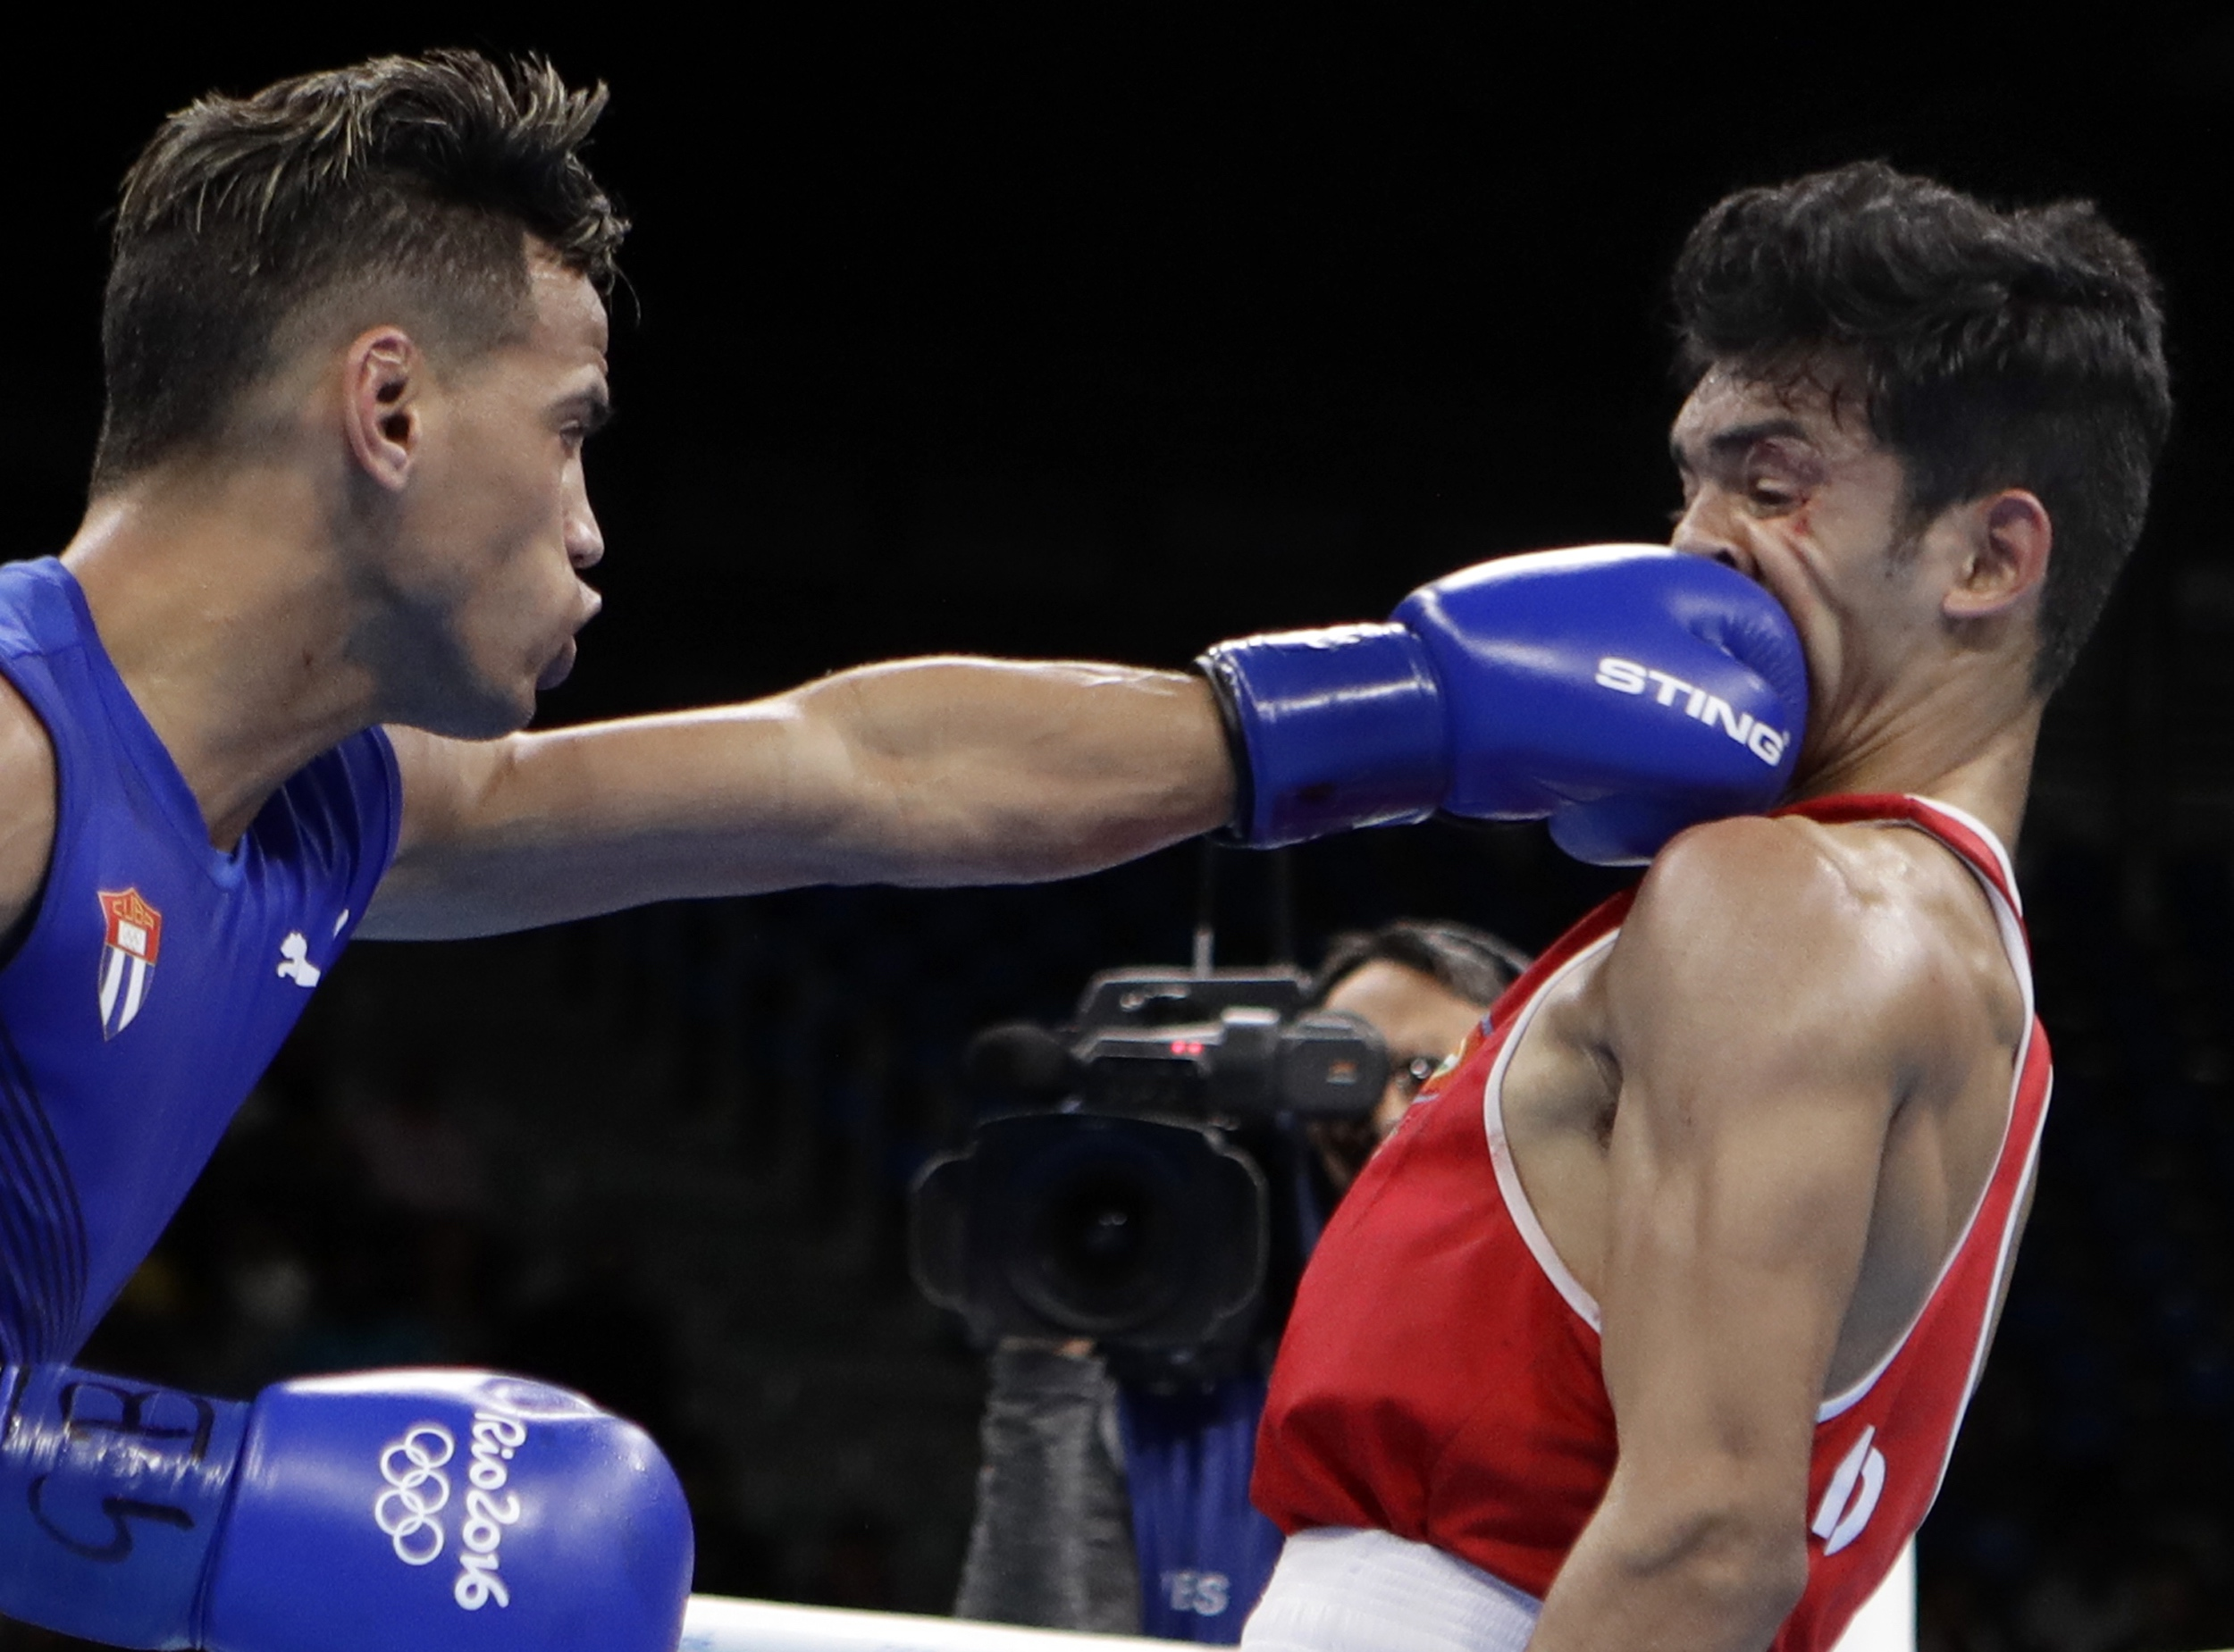 Cuba's Robeisy Ramirez, left, fights India's Shiva Thapa during a men's bantamweight 56-kg preliminary boxing match at the 2016 Summer Olympics in Rio de Janeiro, Brazil, Thursday, Aug. 11, 2016. (AP Photo/Frank Franklin II)